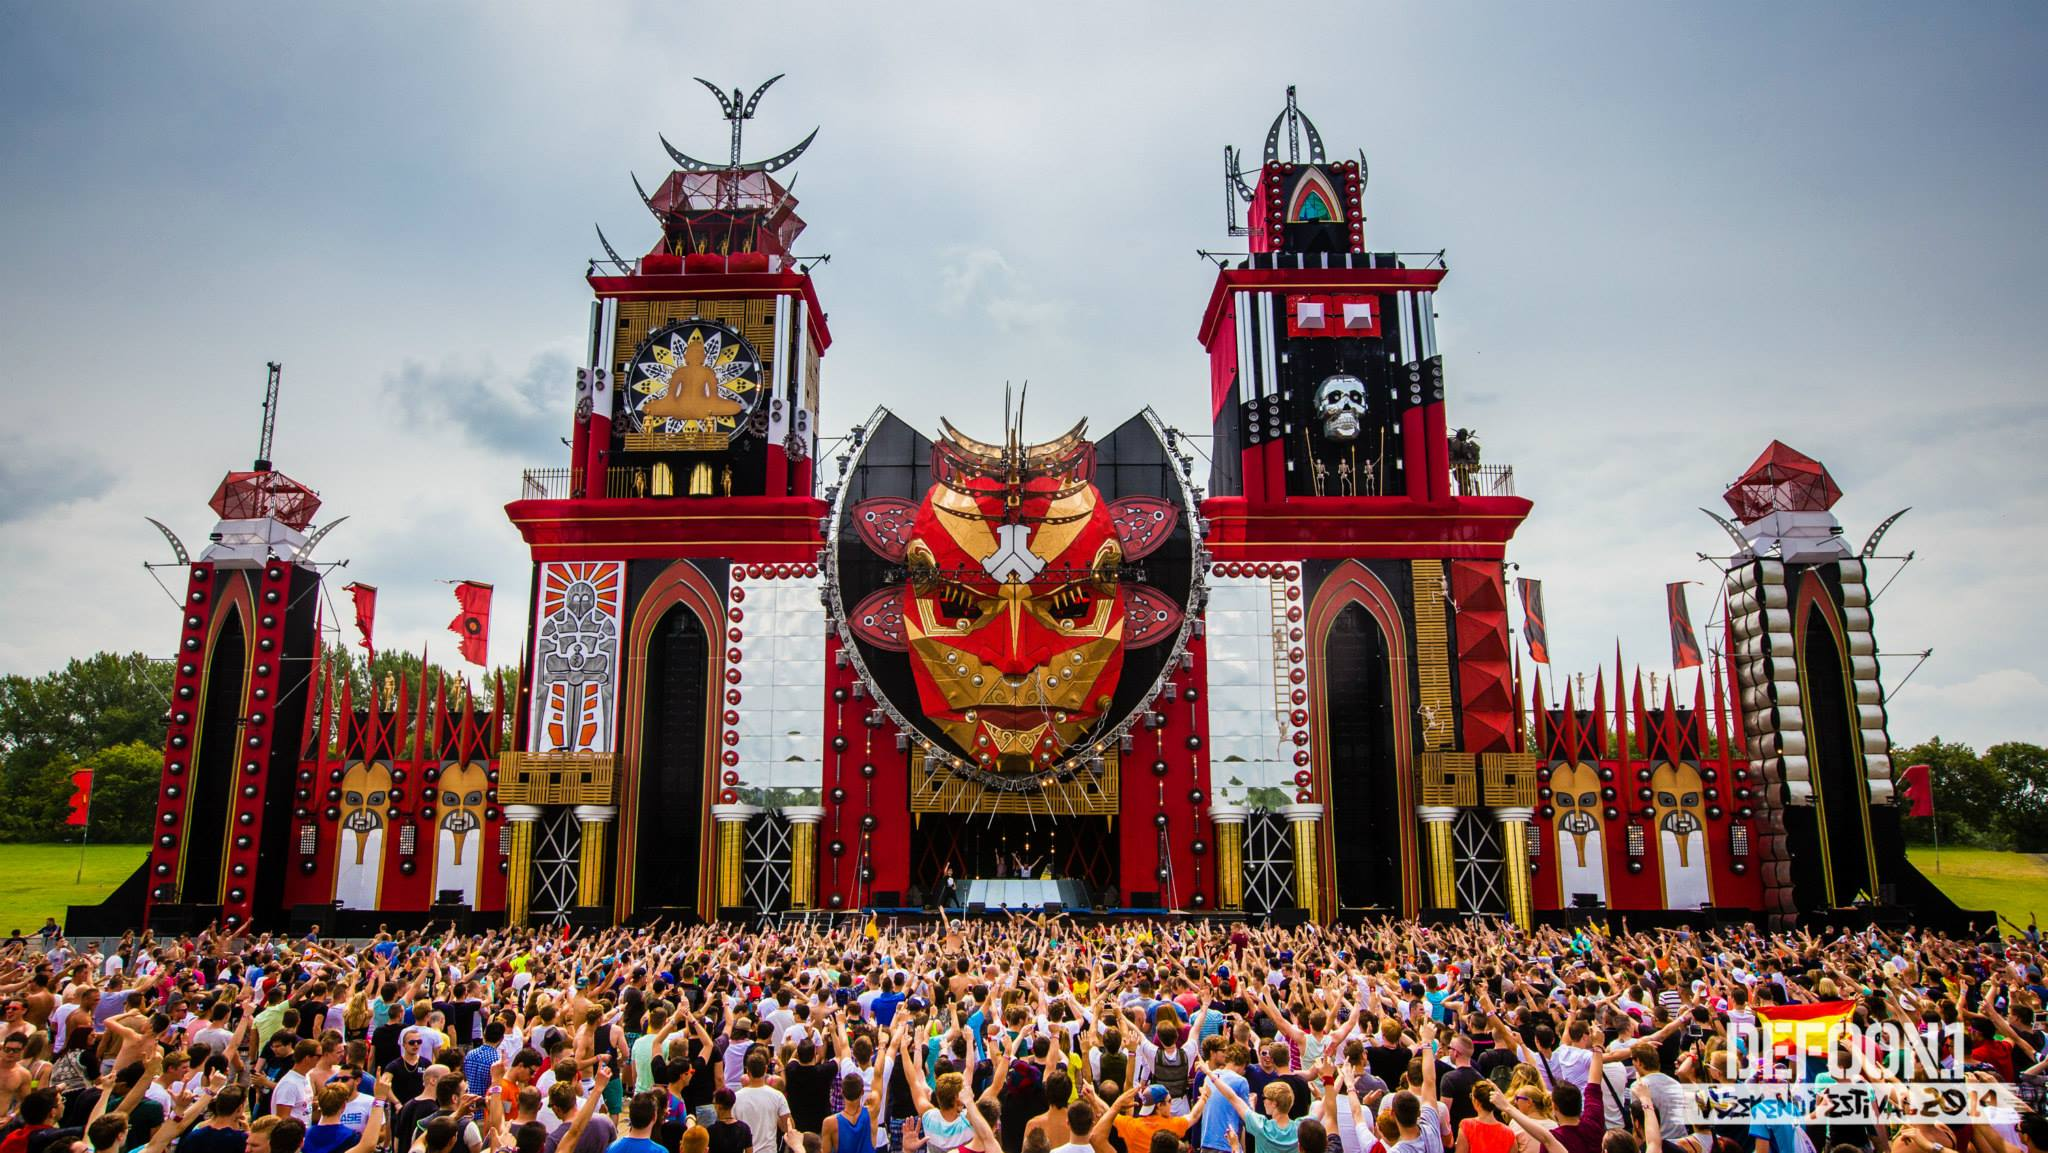 defqon1 A 23-year-old man and a 21-year-old woman died in hospital after collapsing at the defqon1 festival in penrith, west of the city, about 9pm on saturday.